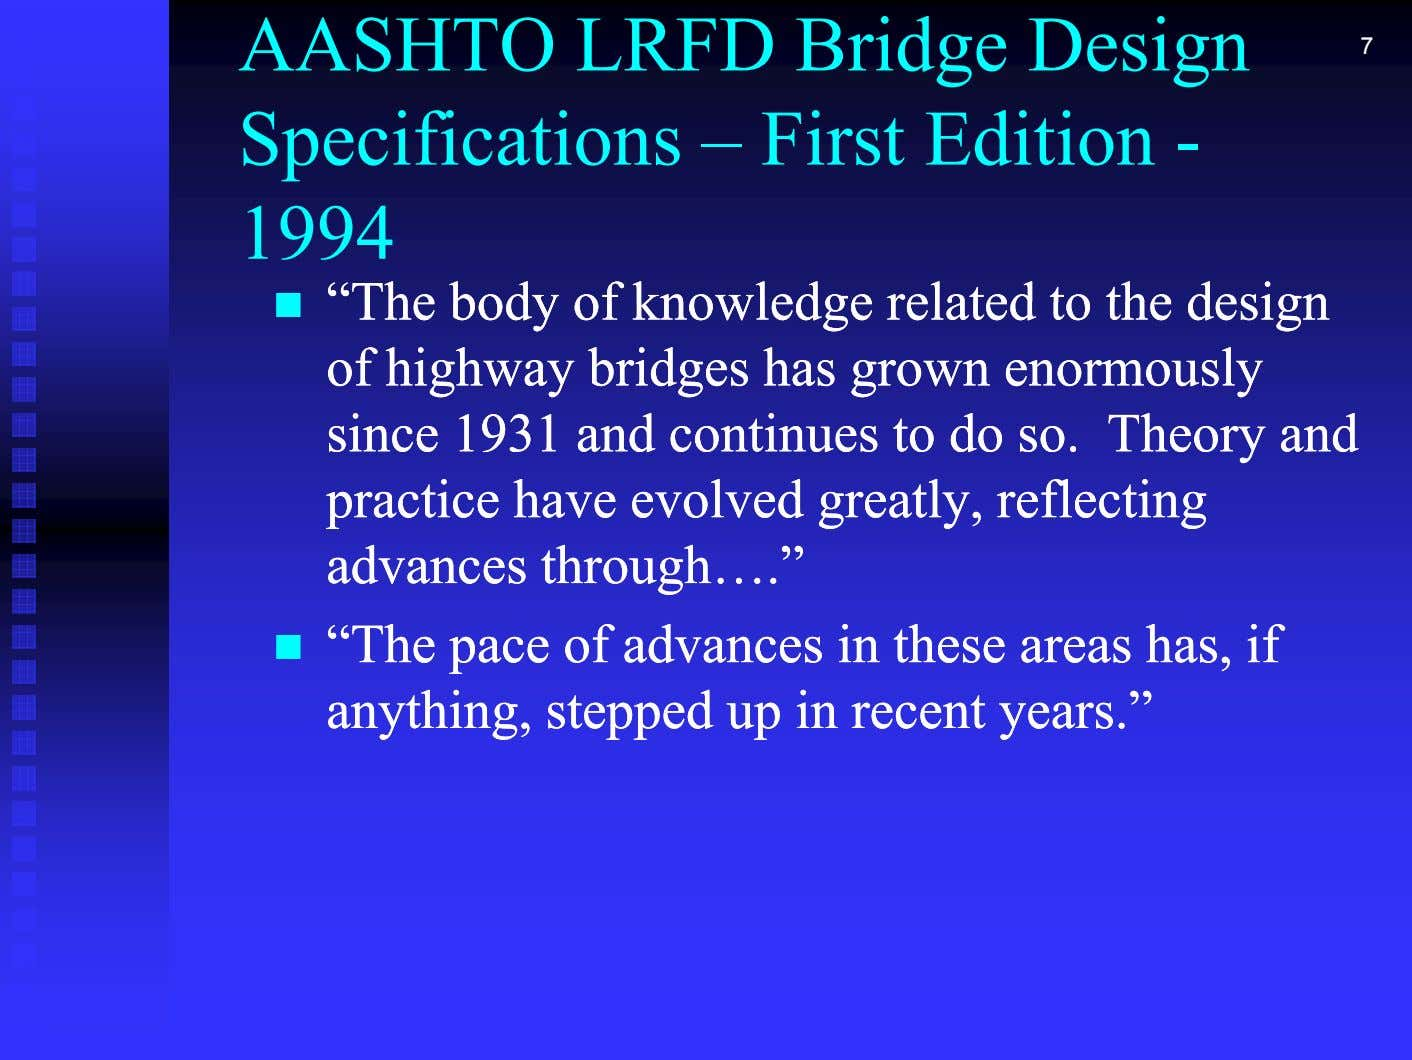 "AASHTO LRFD Bridge Design 7 S p ecifications – First Edition - 1994  """"ThThee"